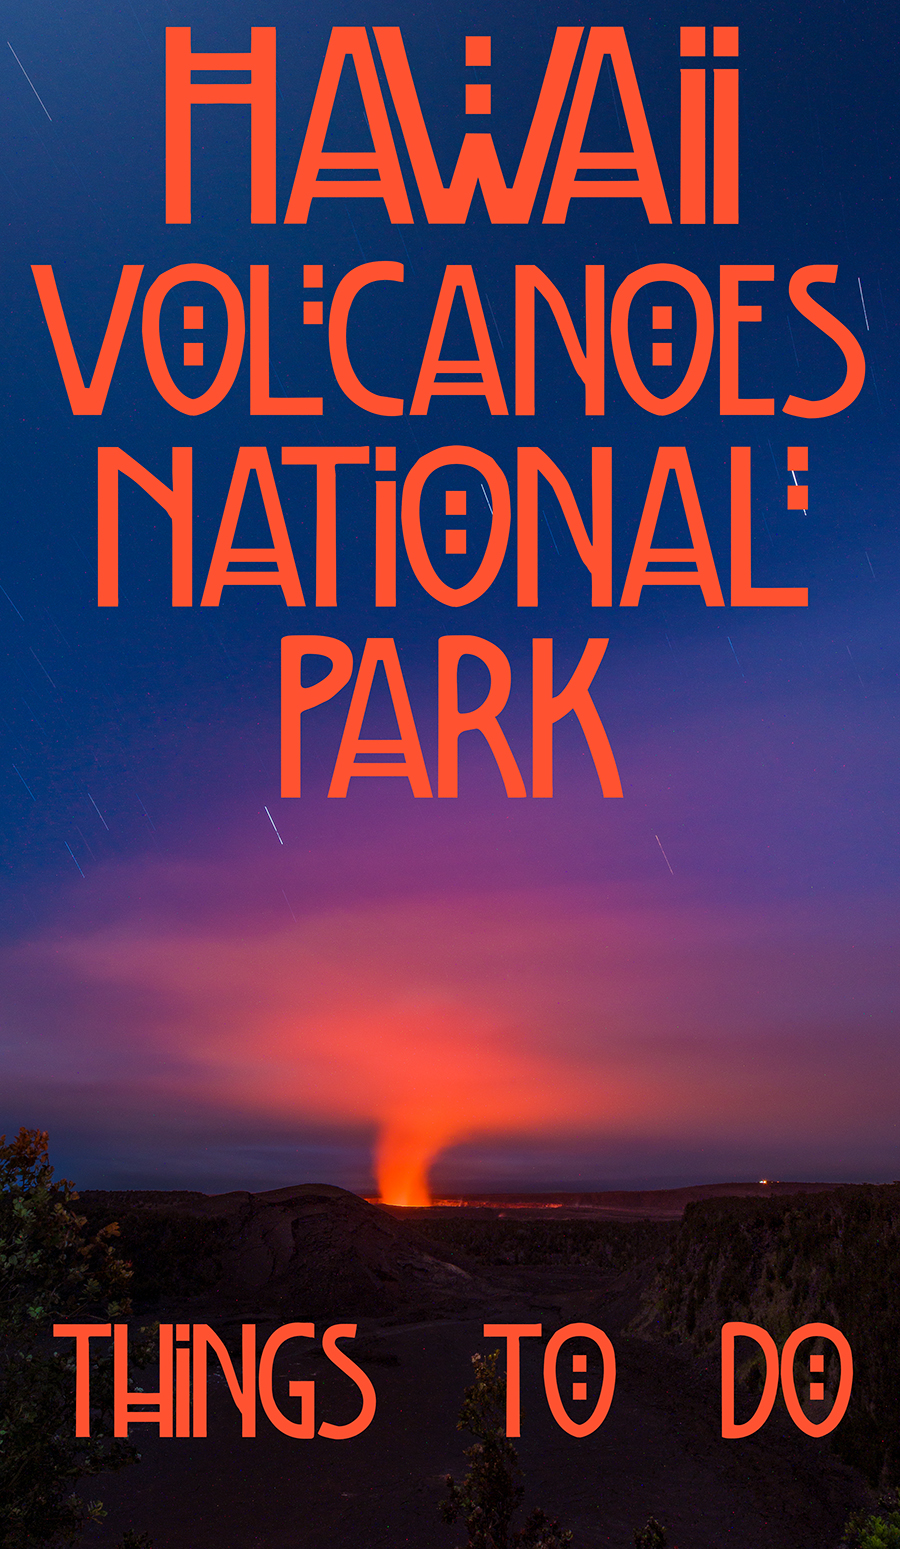 things to do in hawaii volcanoes national park travel caffeine rh travelcaffeine com Hilo Volcano Hilo Volcano